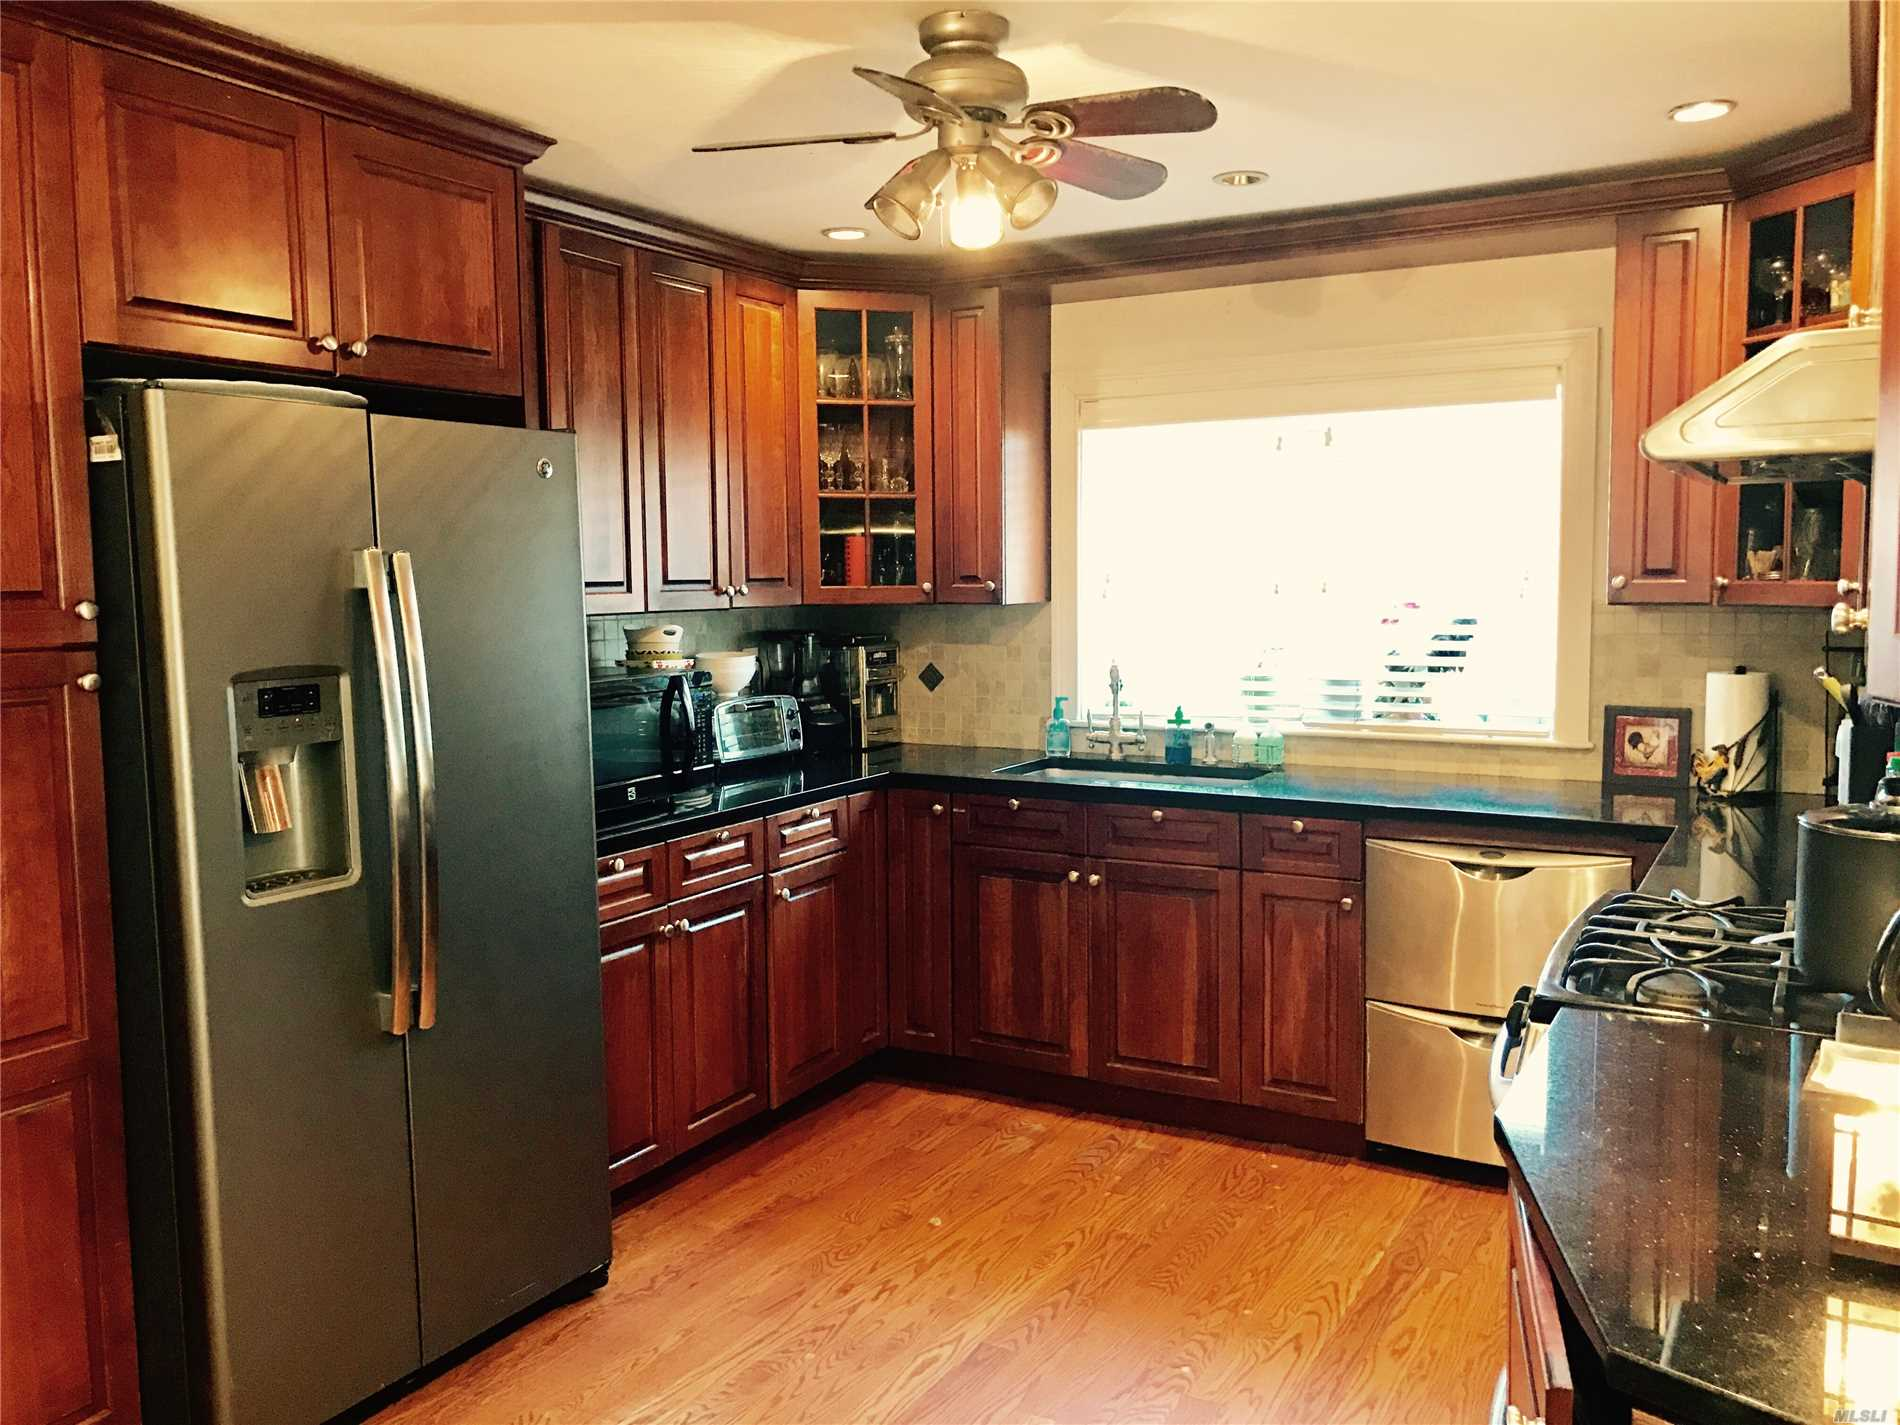 Make This Home Yours Featuring All The Traditions And Characteristics Of A Colonial In Little Neck, Queens. This Home Features An Extraordinary Formal Living Room W/ A Fireplace, Formal Dining Room, Powder Room, Kitchen W/ Granite Countertops And Stainless Steel Appliances, Family Room With Sliding Doors Leading To The Backyard All On The 1st Floor. The 2nd Floor Is Just As Spacious Featuring A Master En Suite With Wic's, 3 Add'l Bedrooms And Bathroom. All Hardwood Floors Throughout.